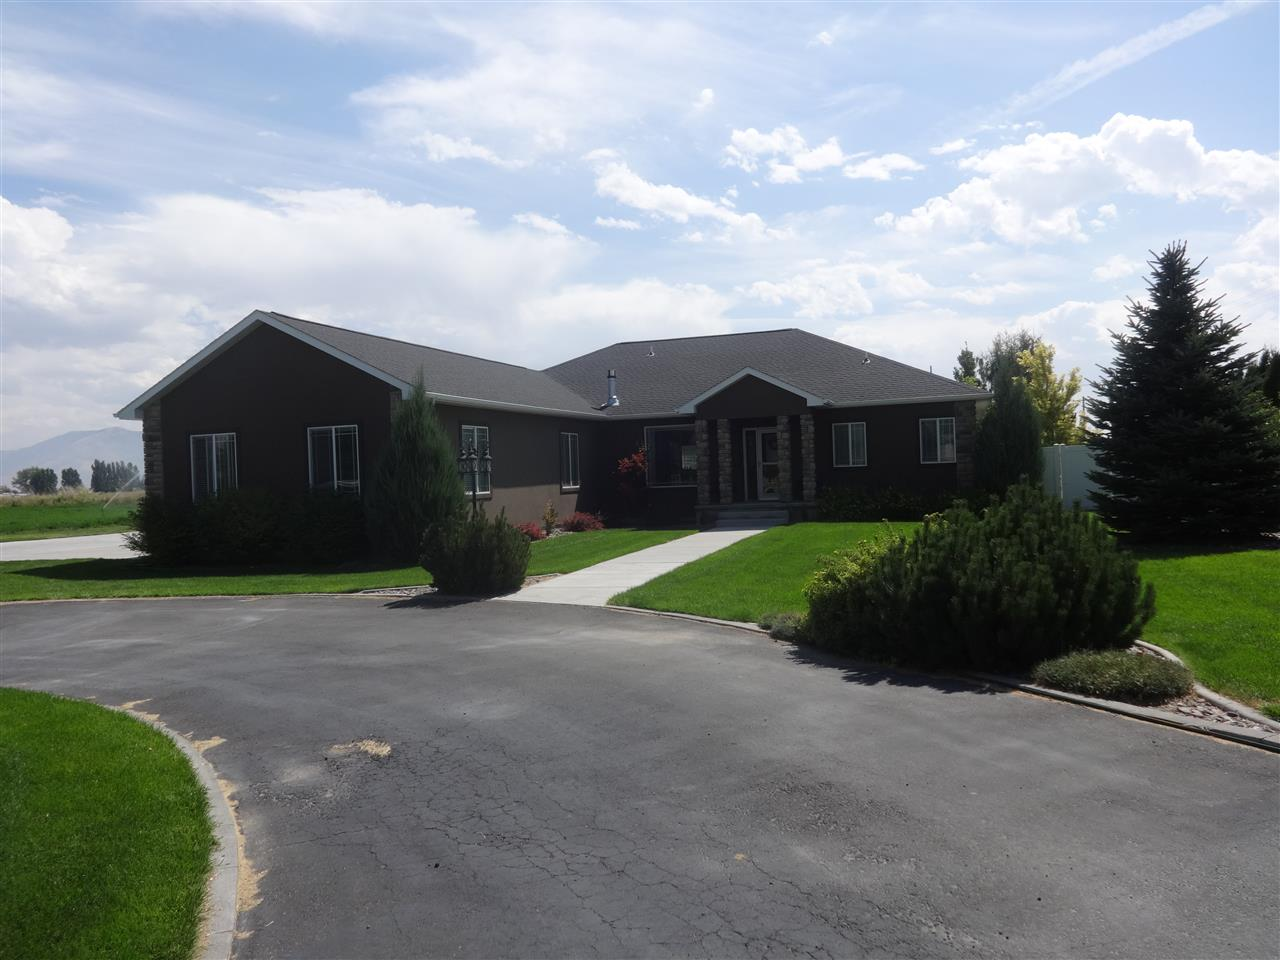 Single Family Home for Sale at 413 S 50 W 413 S 50 W Burley, Idaho 83318